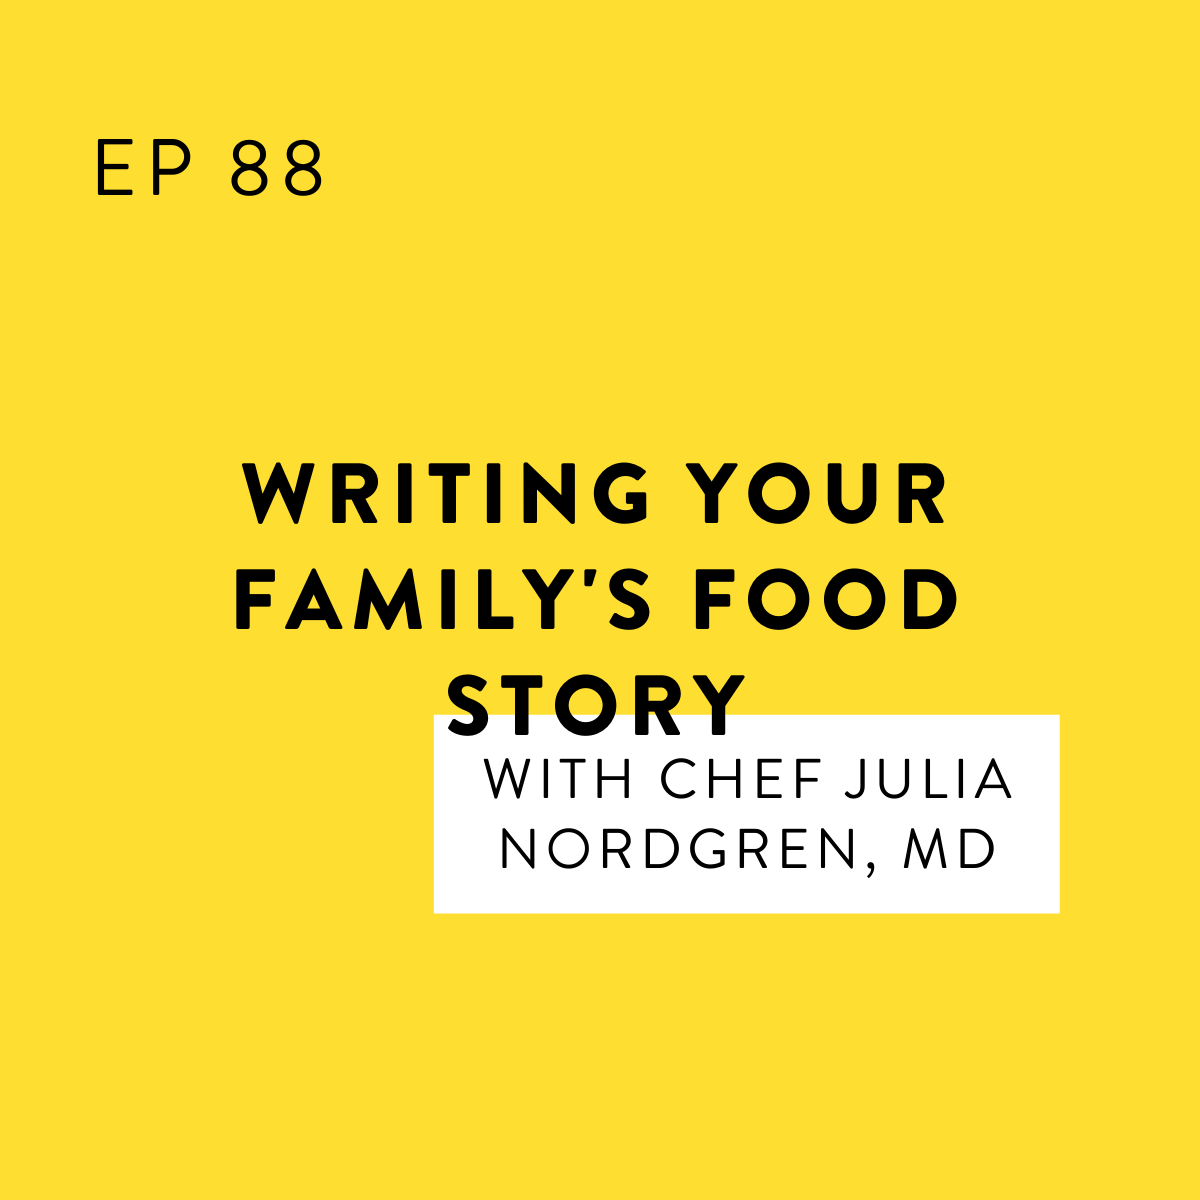 Writing Your Family's Food Story with Chef Julia Nordgren, MD